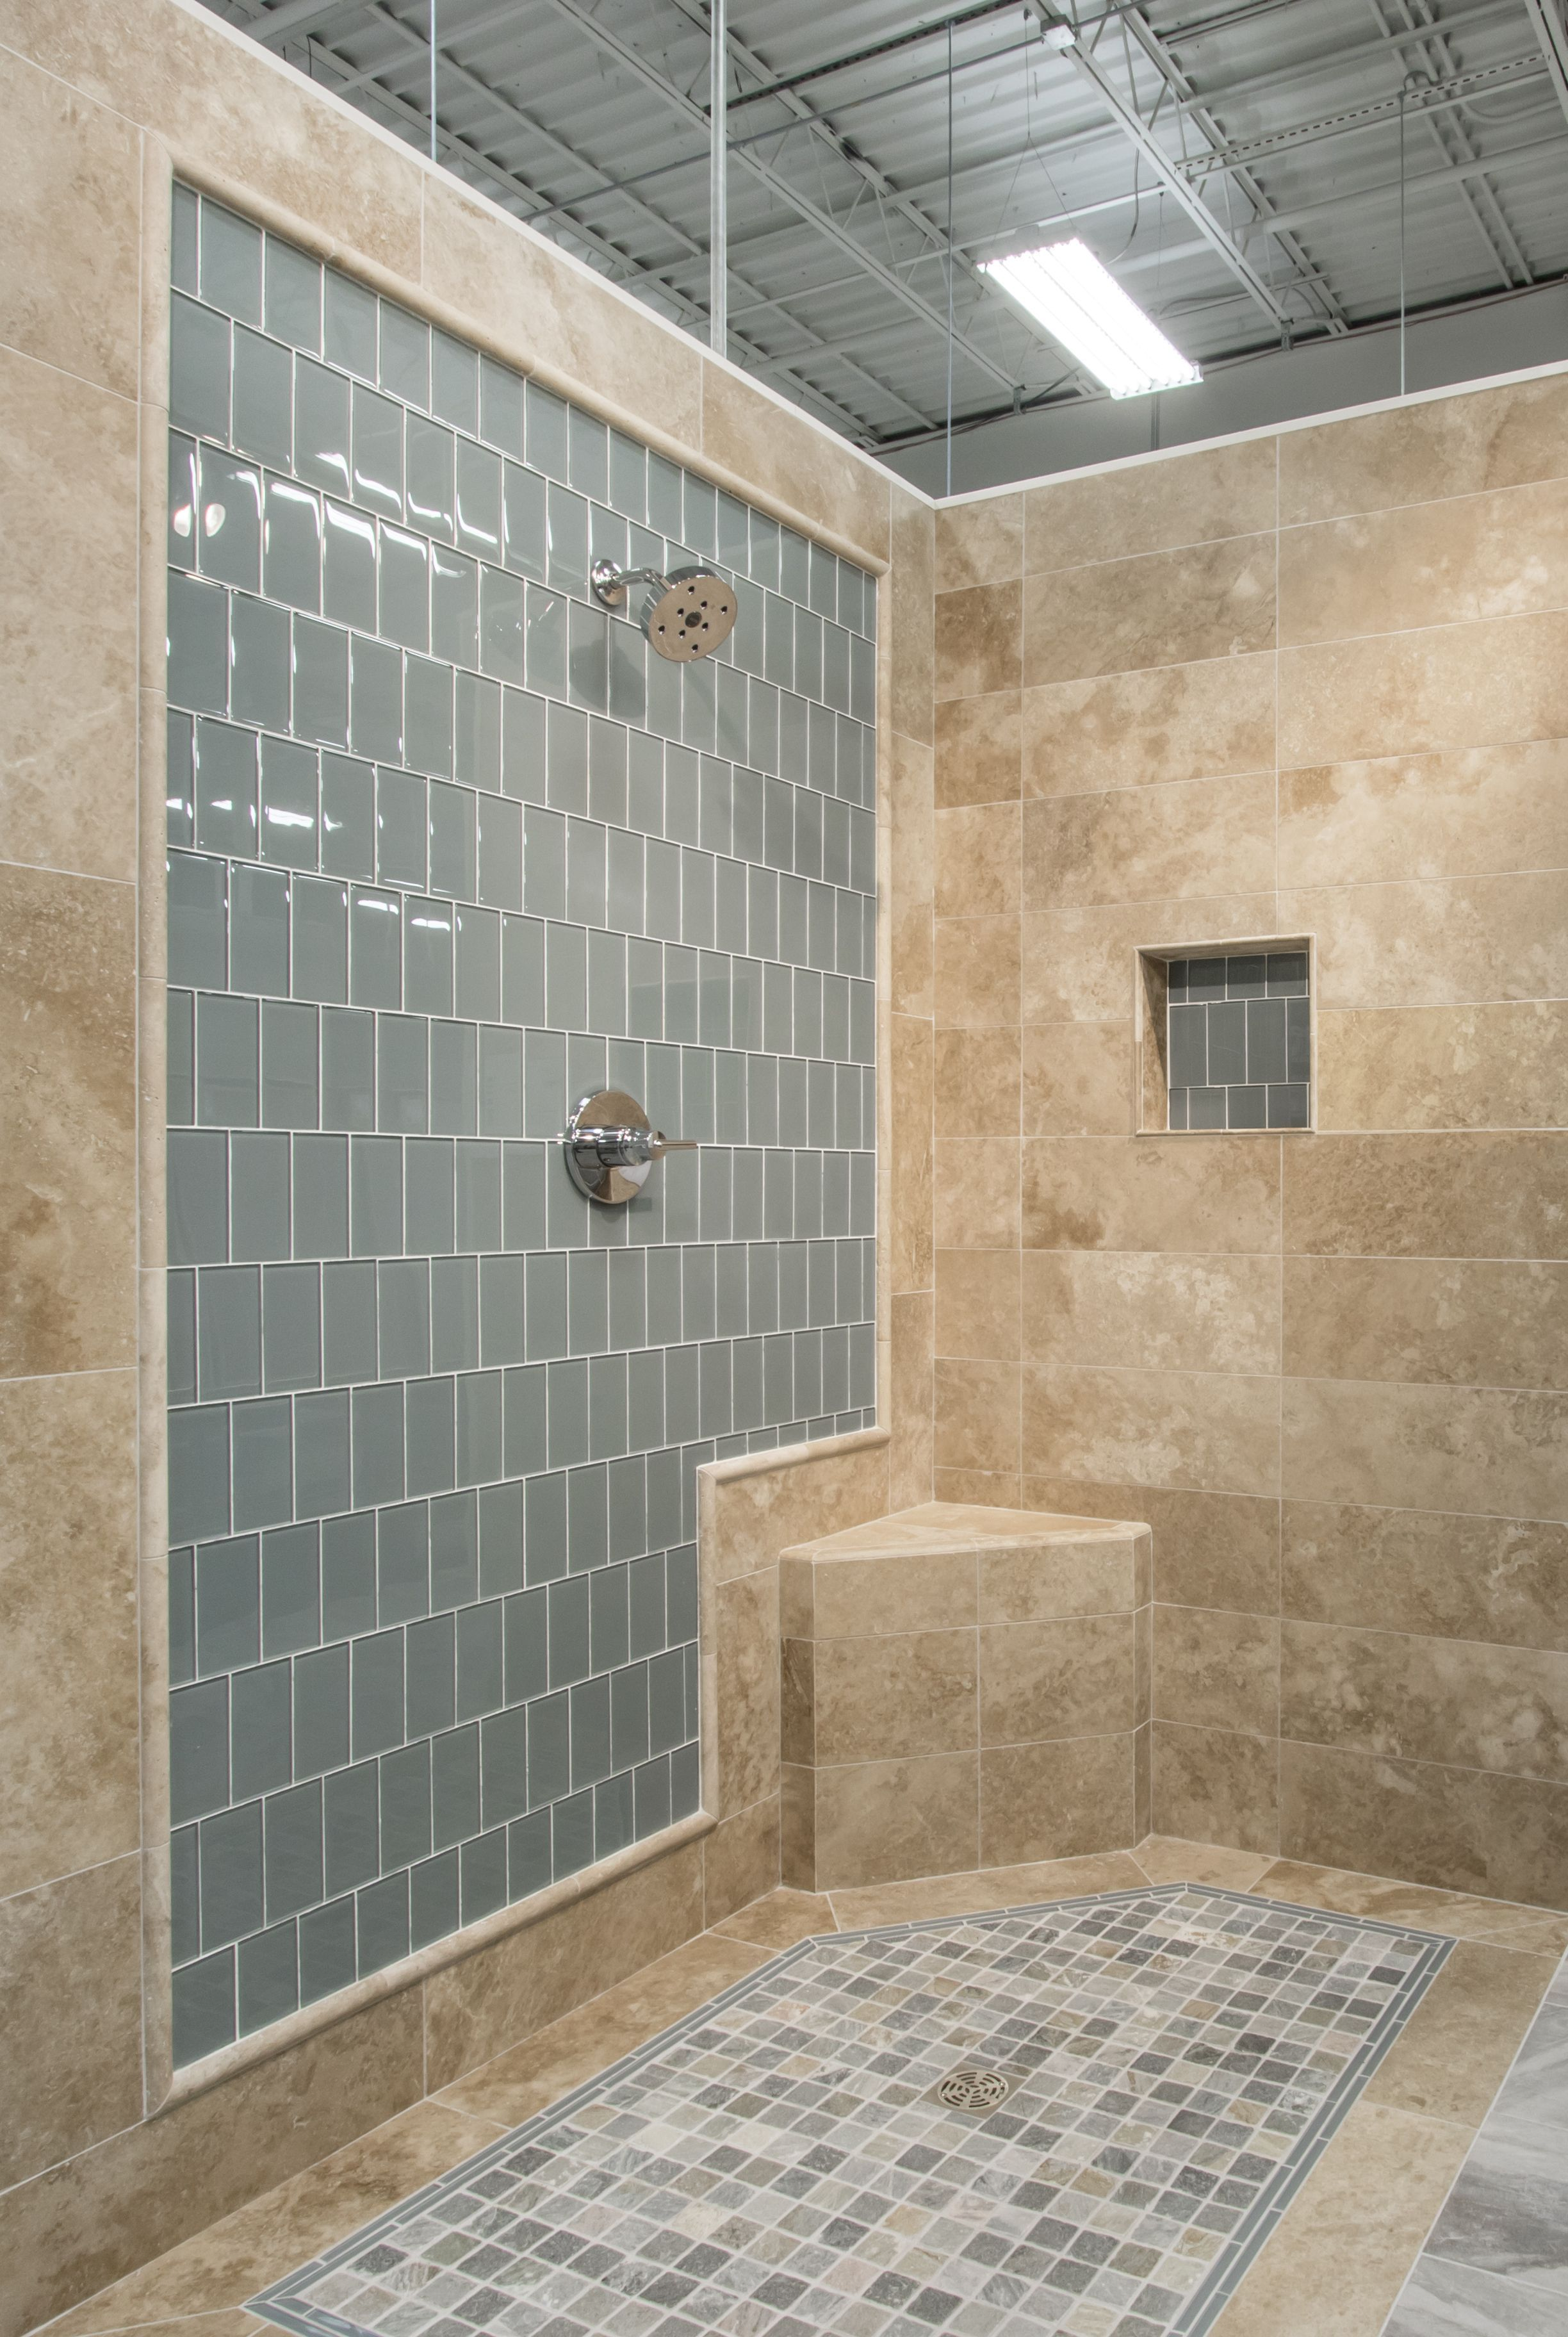 Enhance Traditional And Contemporary Settings With The Soothing Aquamarine Hue Of This Glass Focal Point Bathroom Shower Tile Water Glass Avec Images Salle De Bain Bains